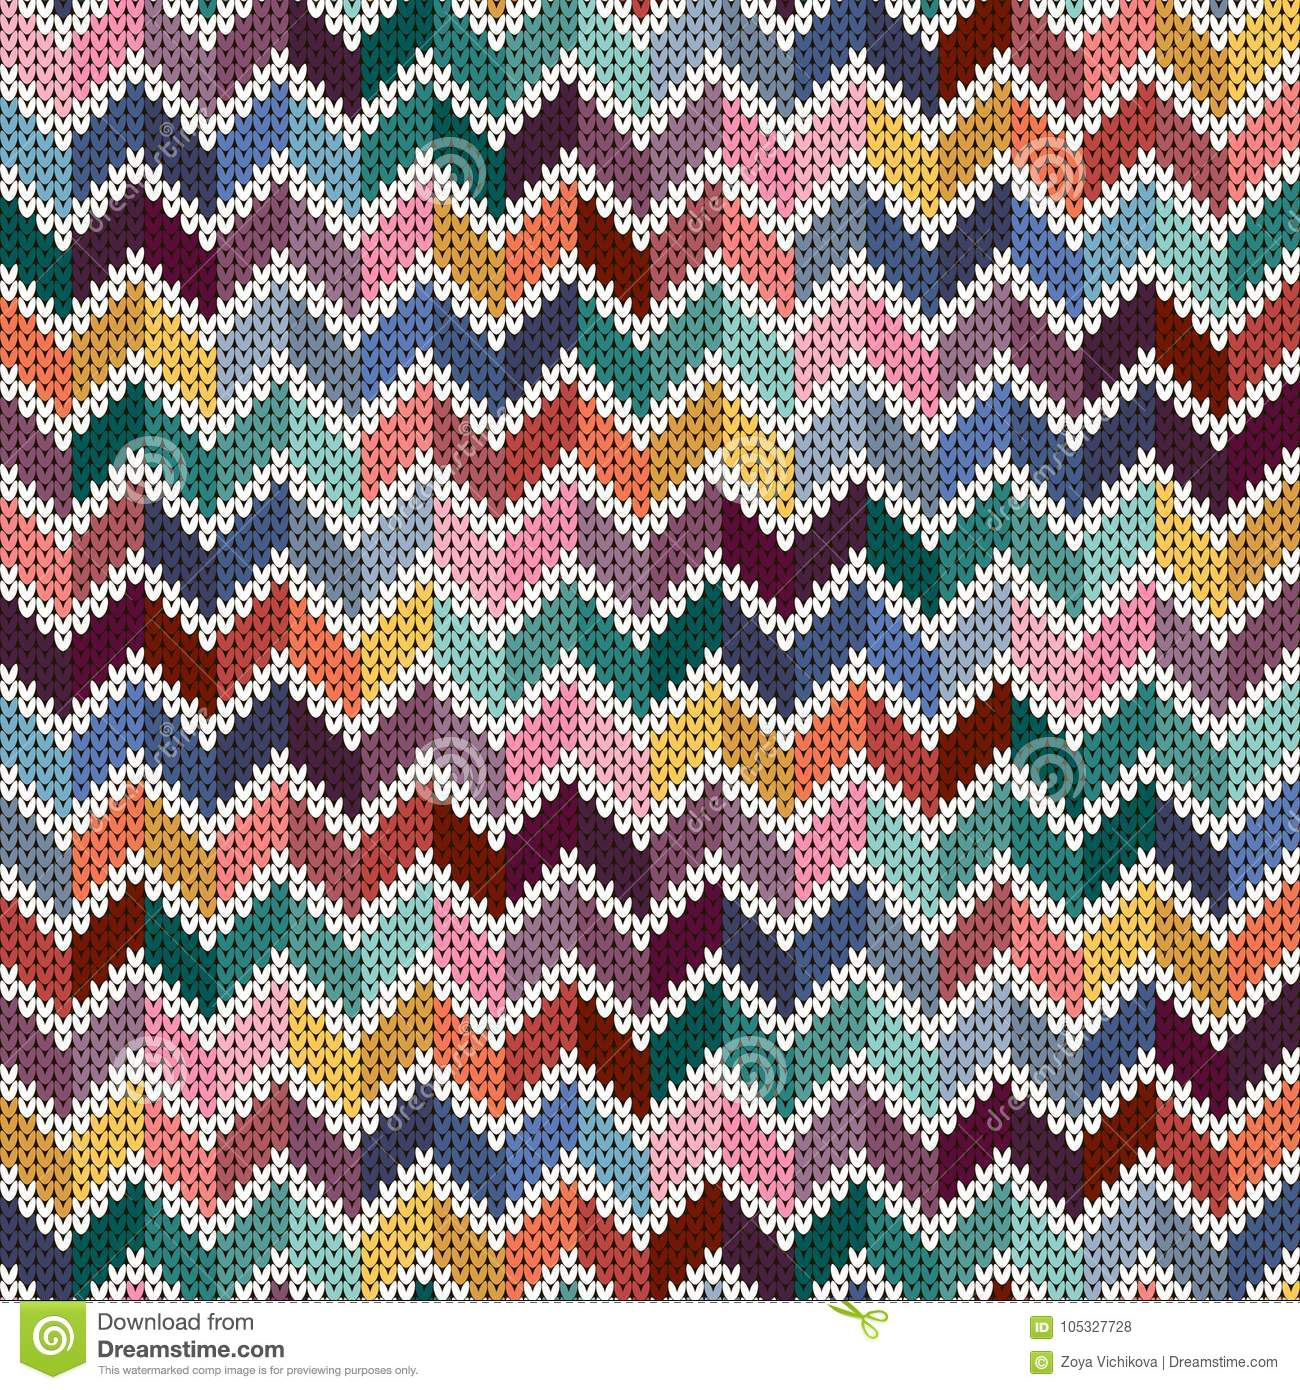 2b4bab282 Seamless Knitted Geometric Multicolor Pattern Stock Vector ...